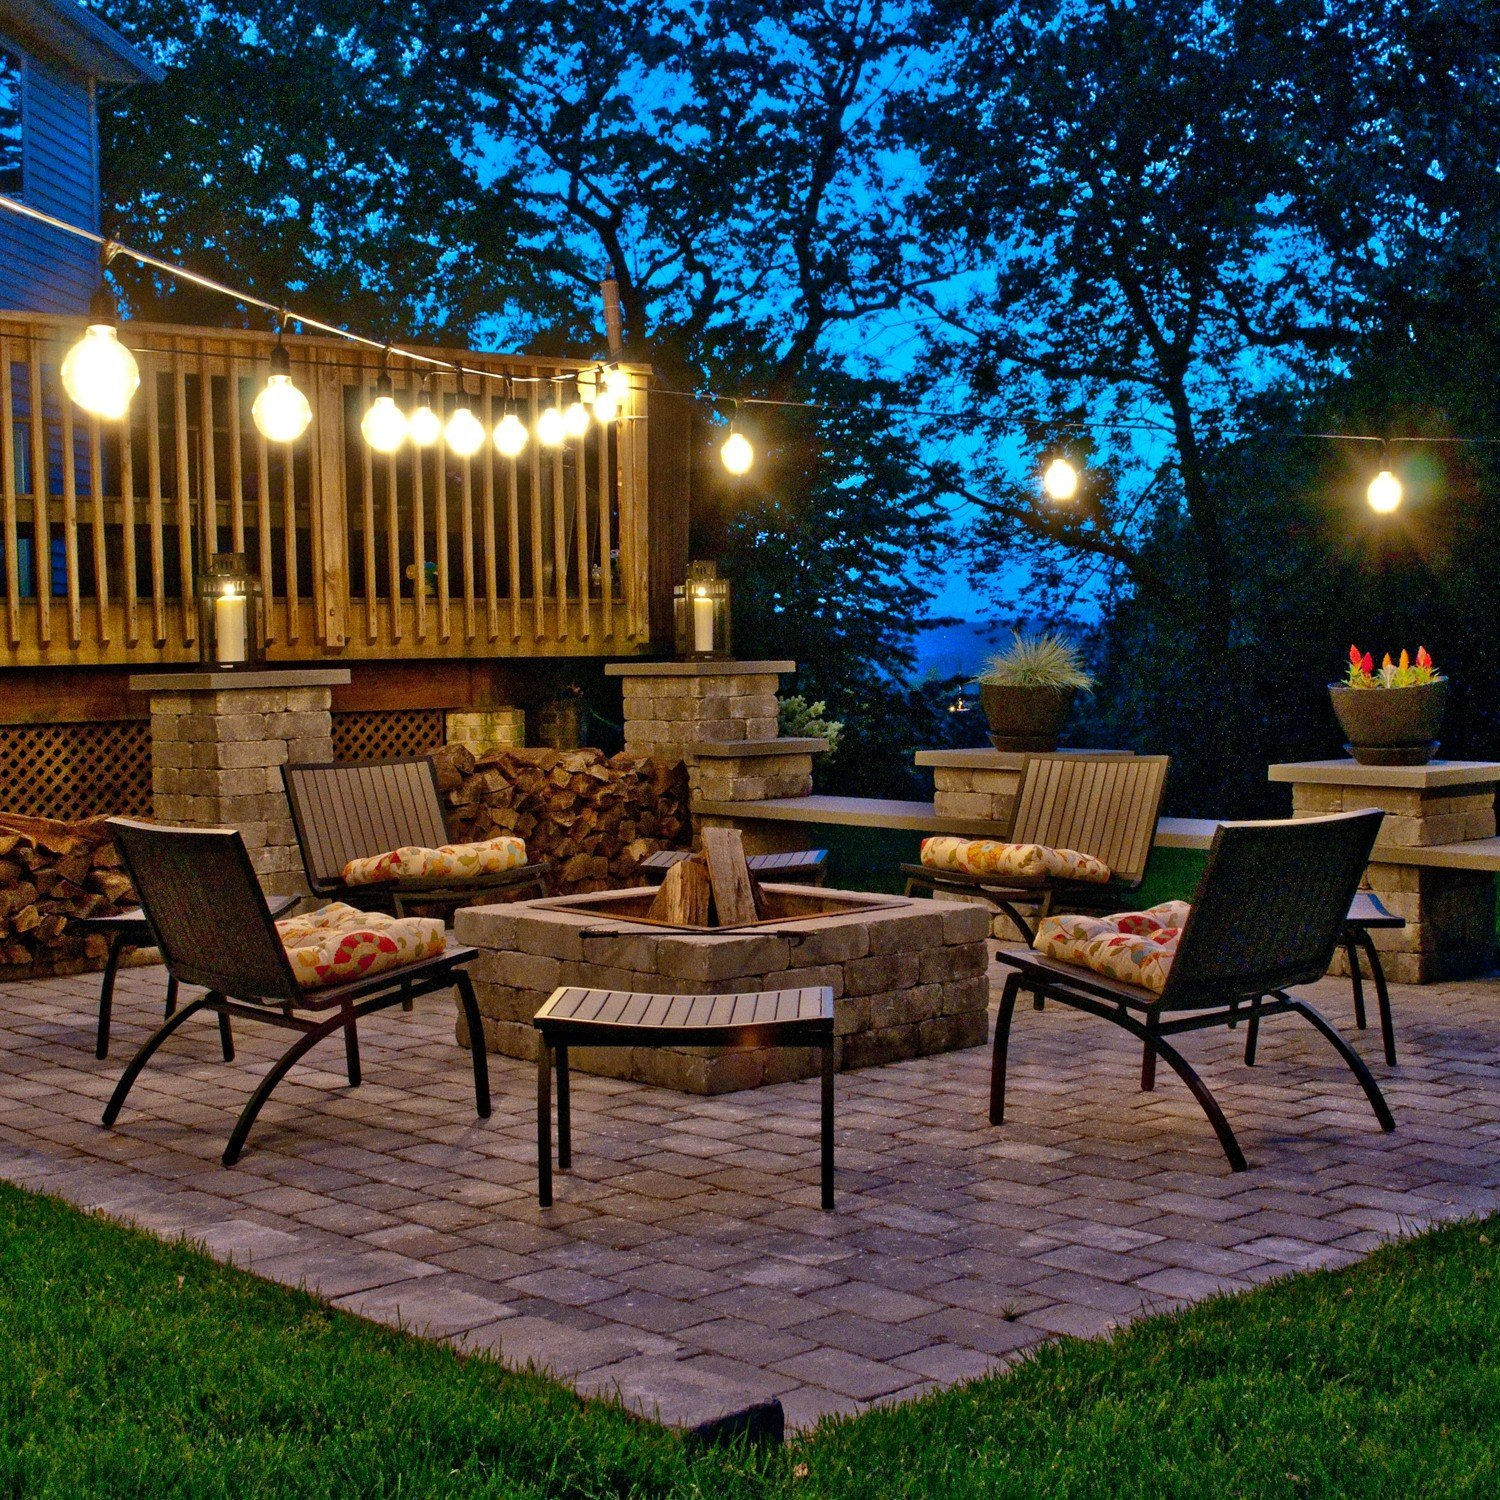 Top Outdoor String Lights for the Holidays - Teak Patio ... on Backyard String Light Designs id=13942